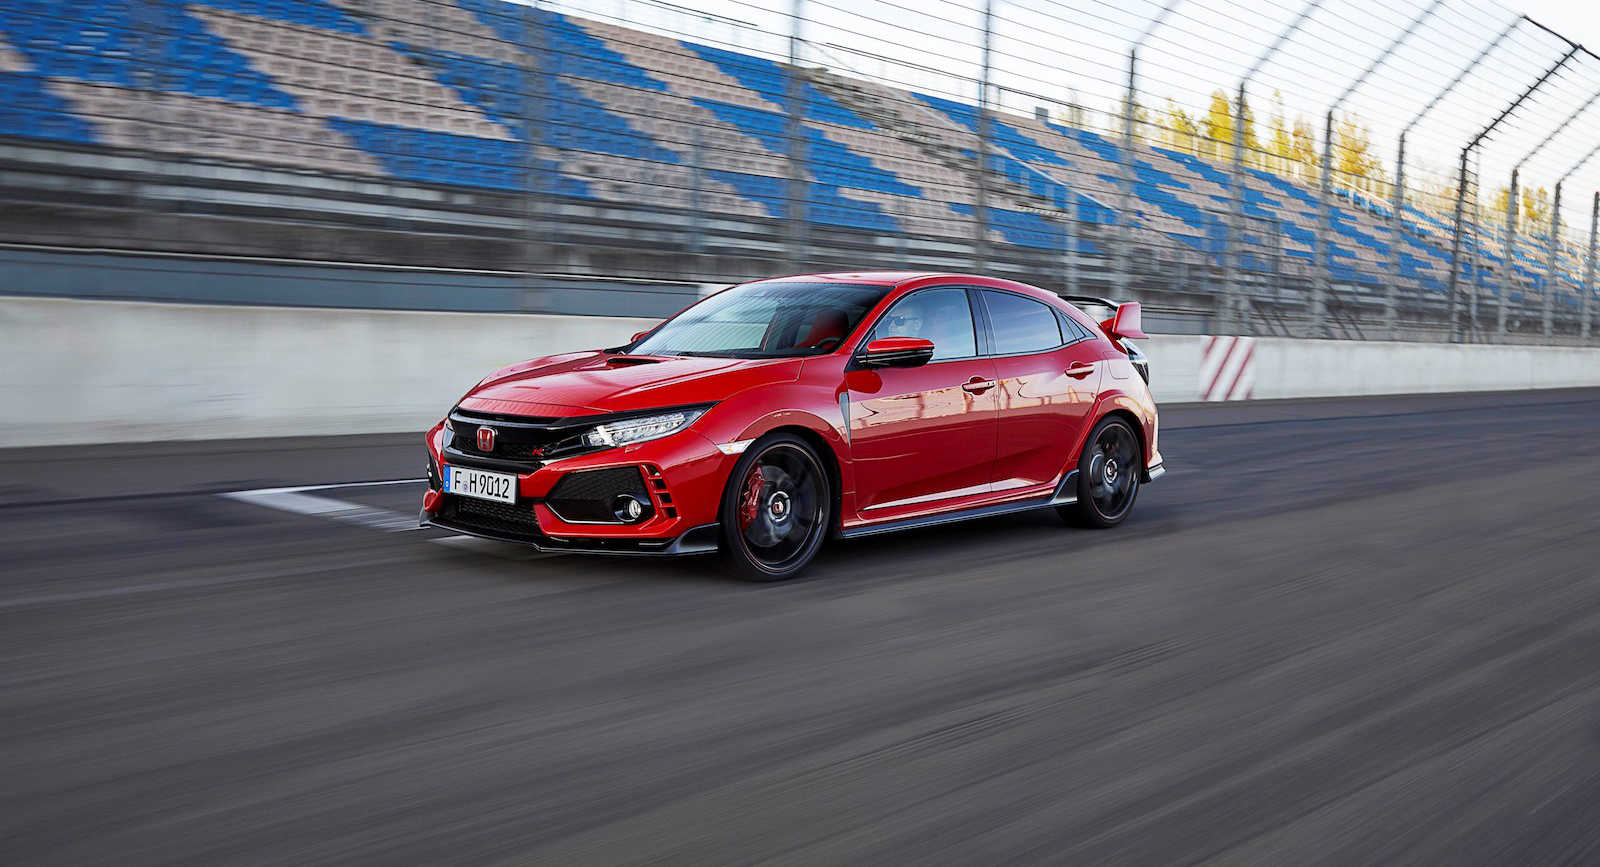 honda-civic-type-r-3.jpg